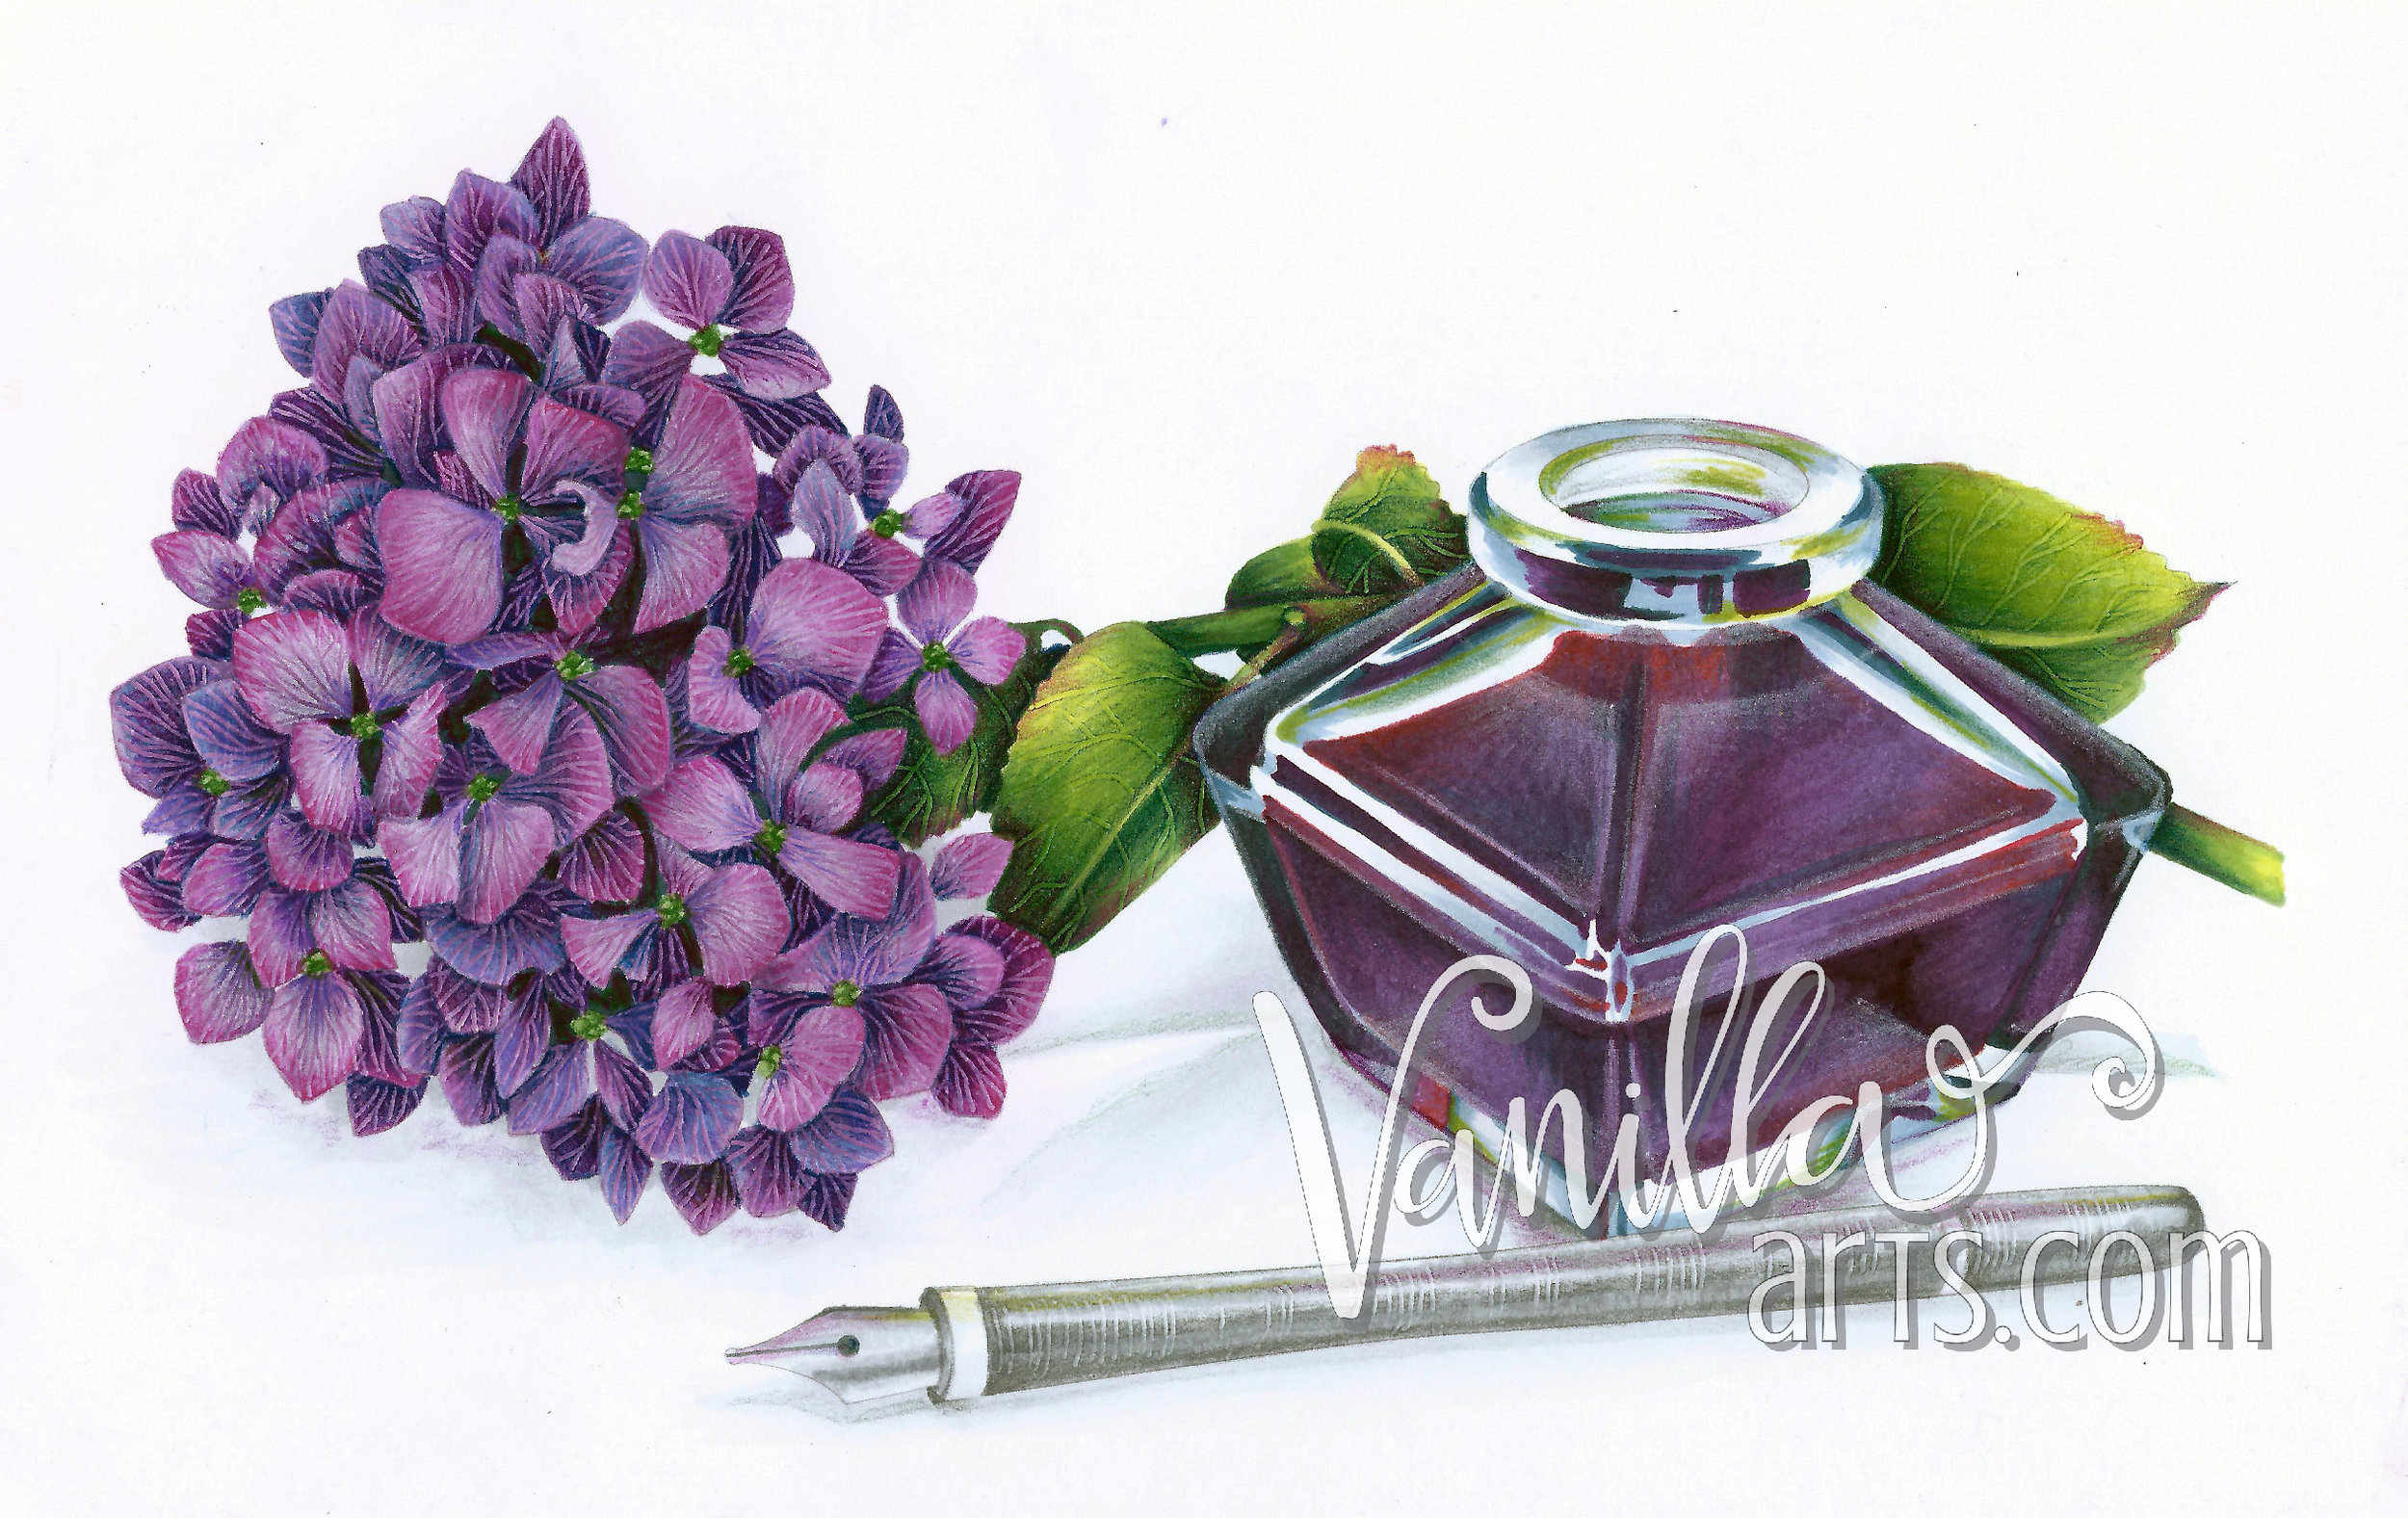 Learn to shift color temperatures. Art of Coloring, challenge level Copic & Colored Pencil classes. | VanillaArts.com